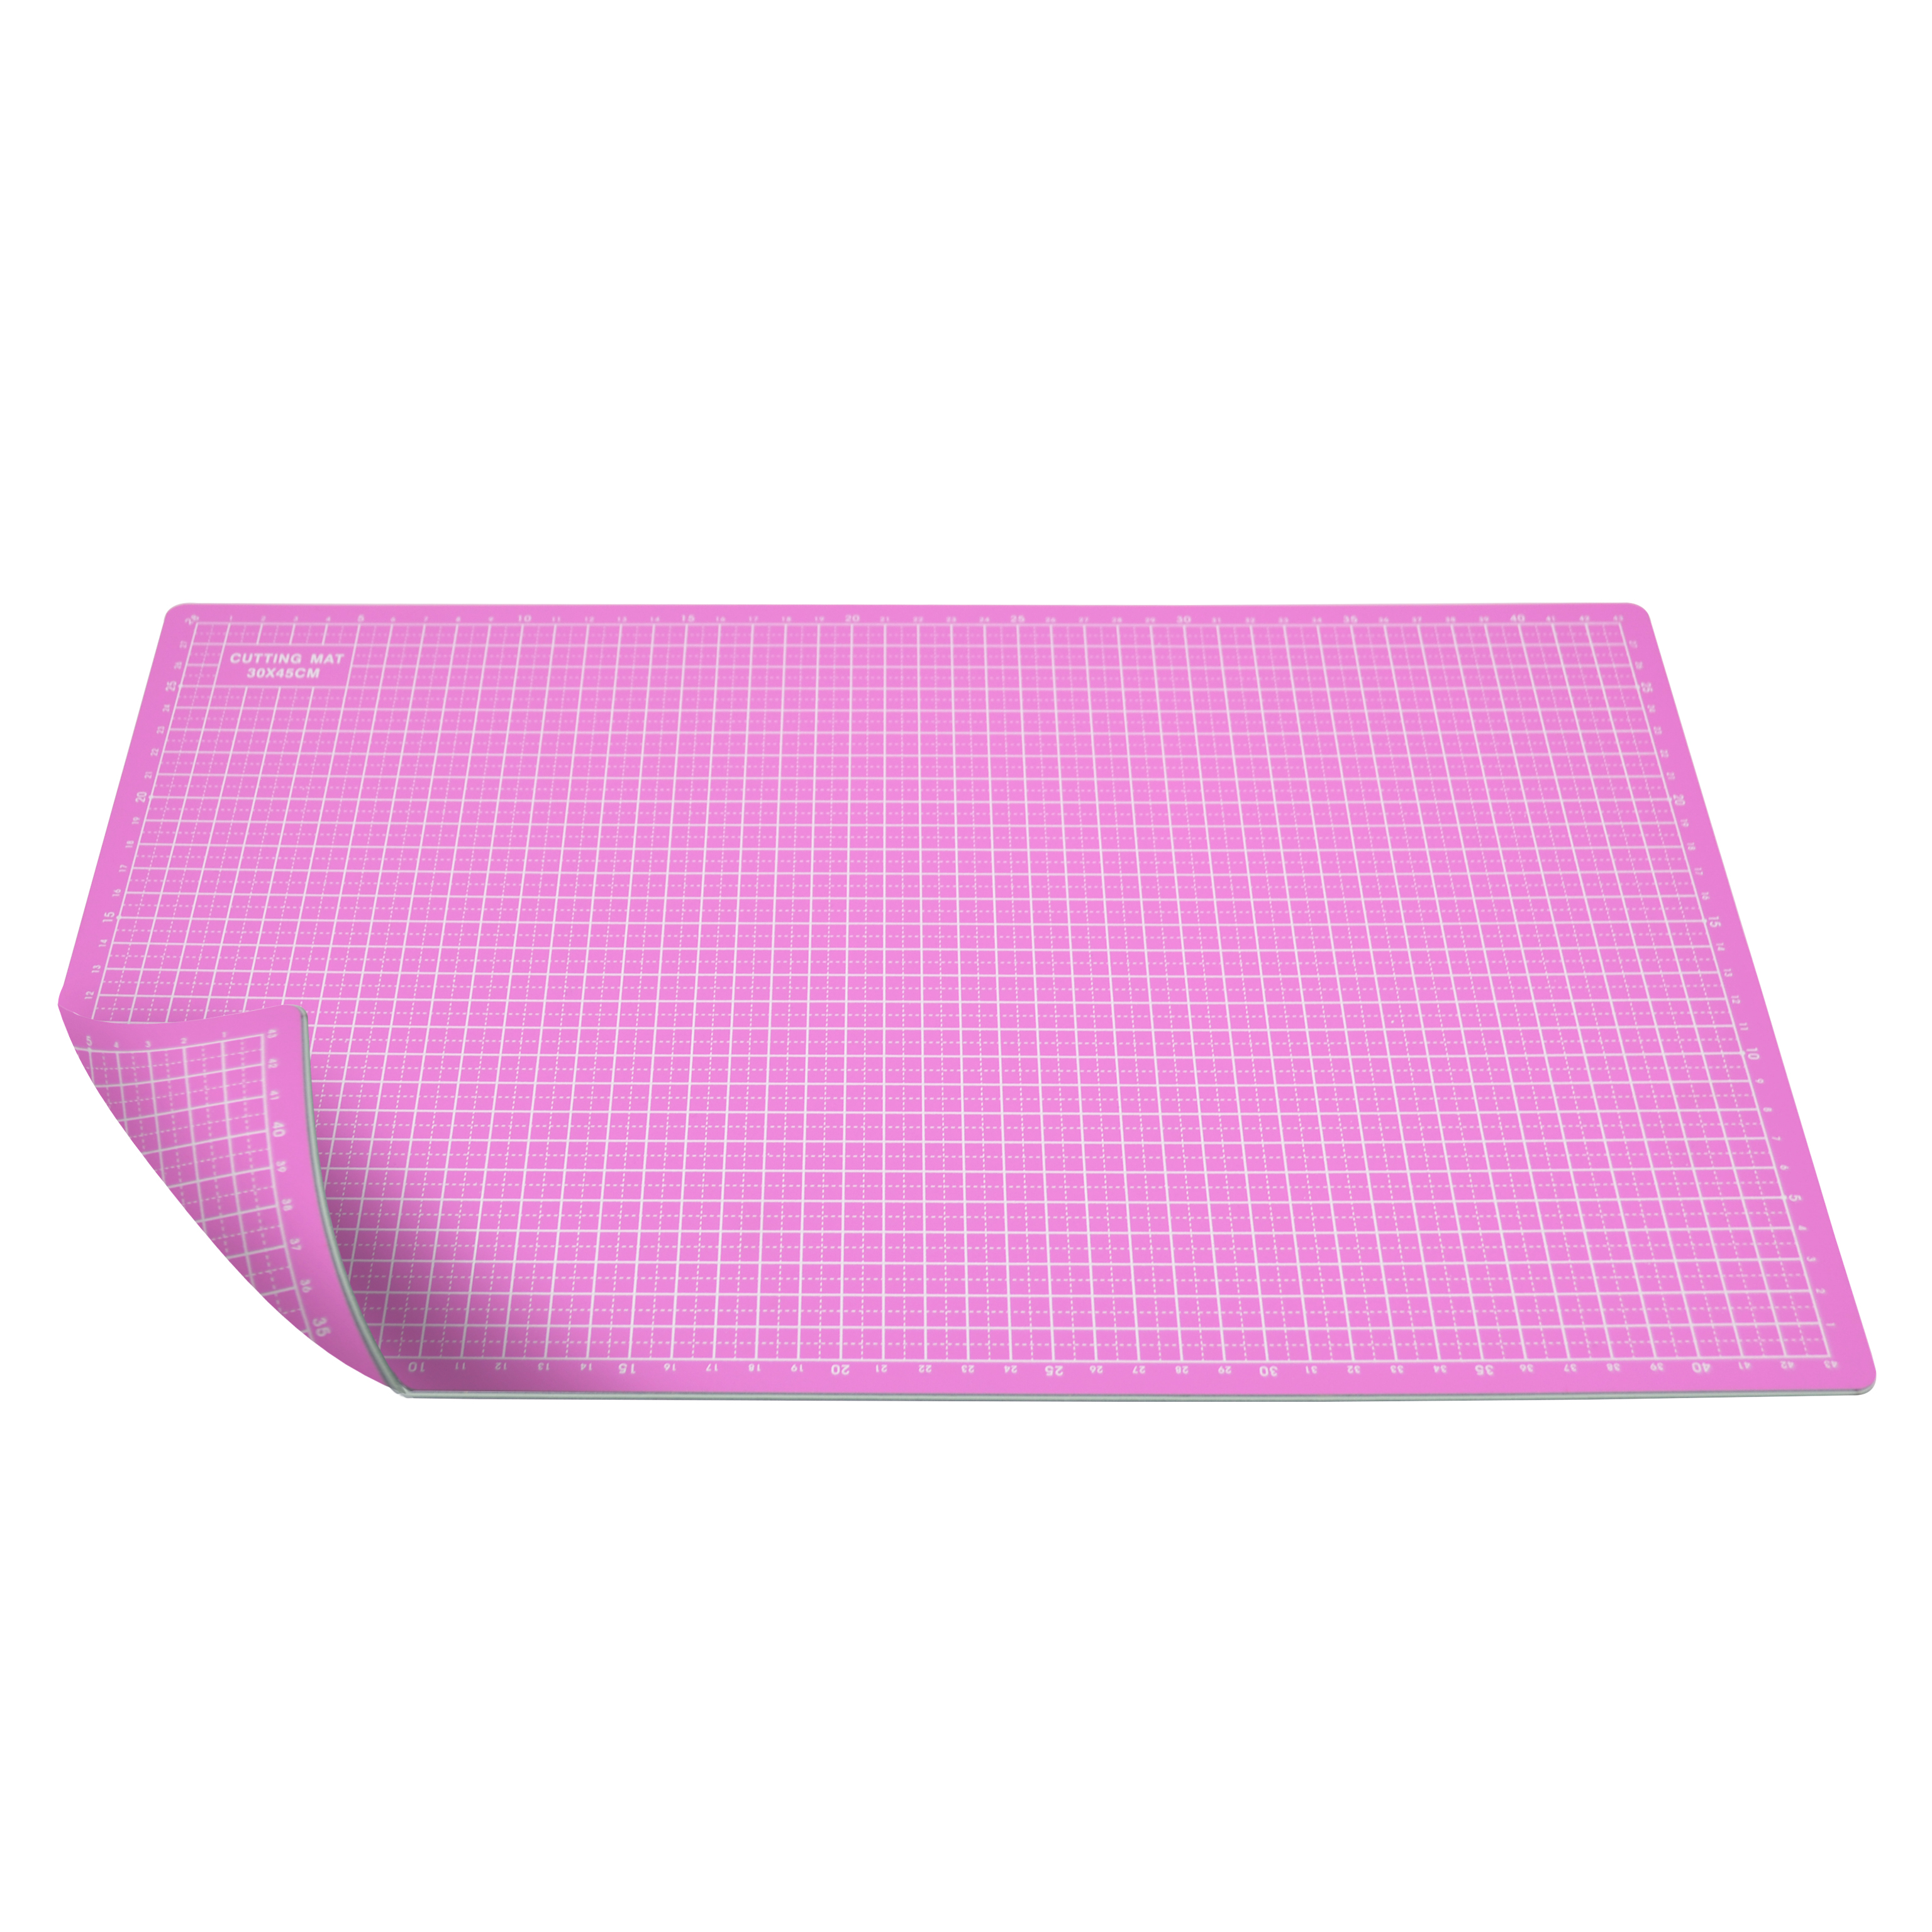 Double Sided Gridded Self Healing Cắt Mat